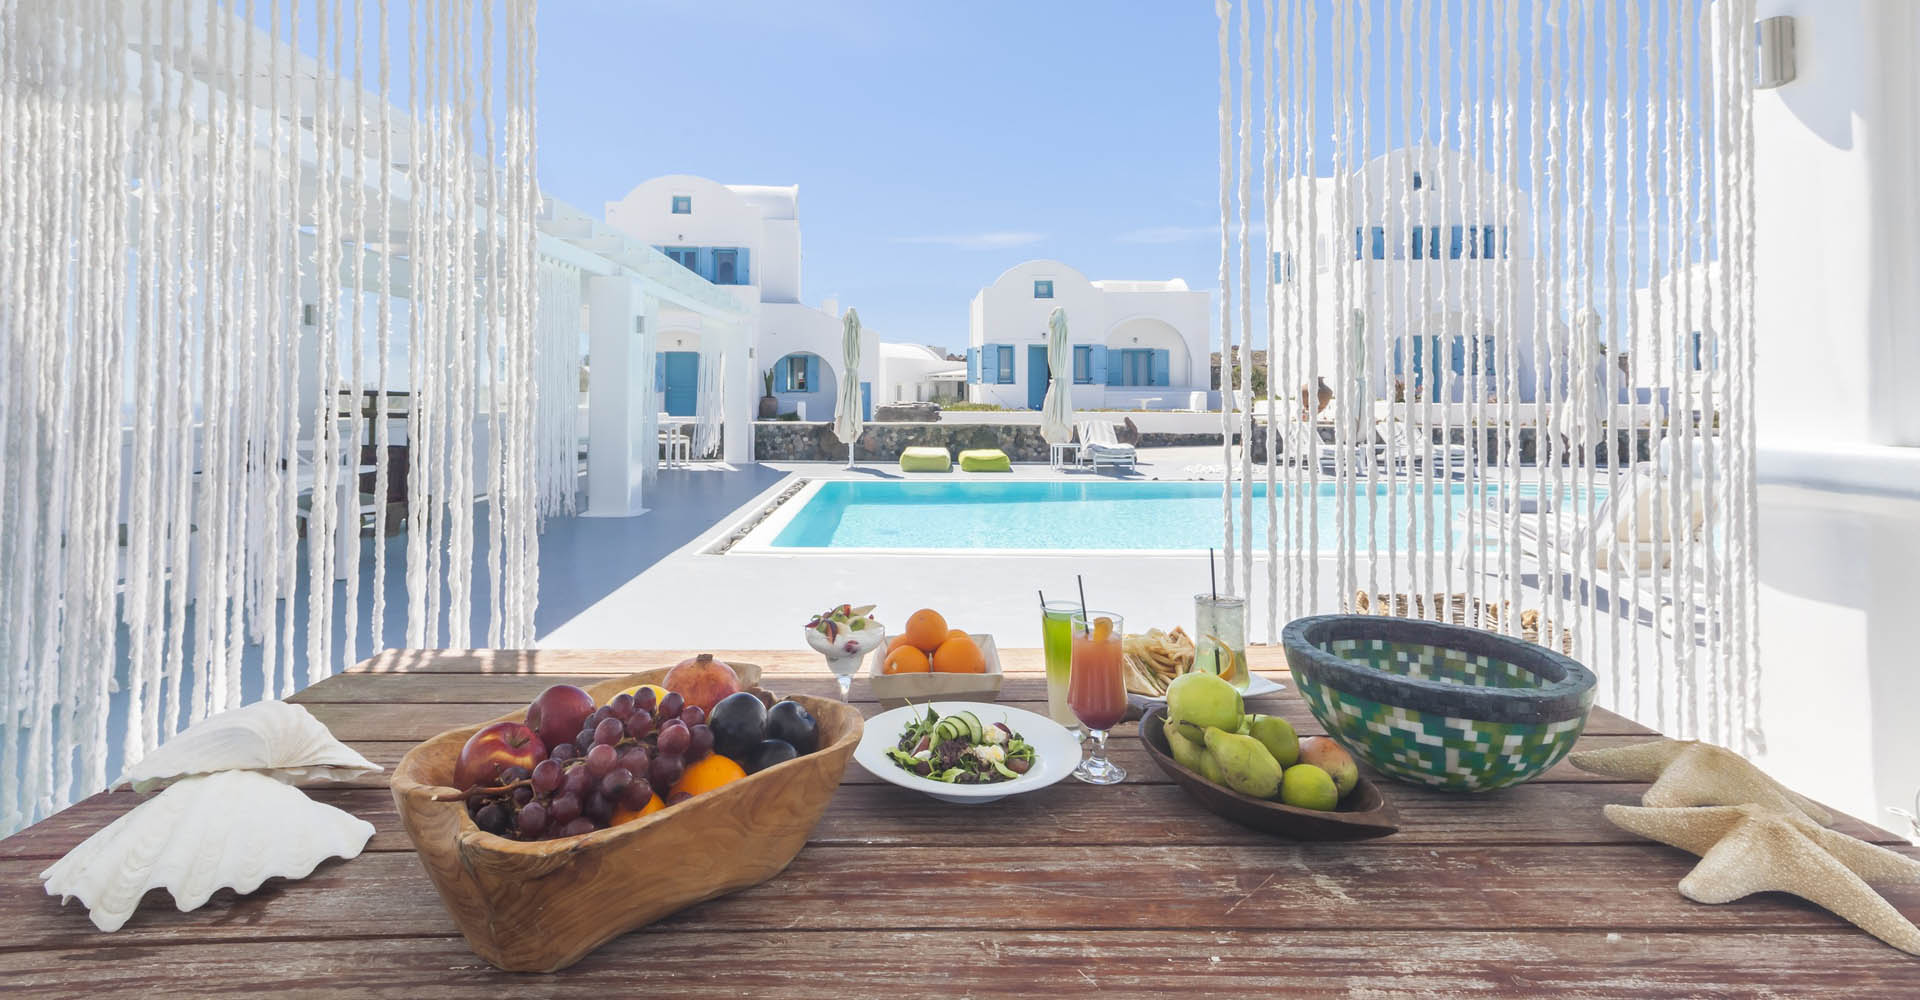 Kalestesia Suites - Pool Bar With Tasty Snacks